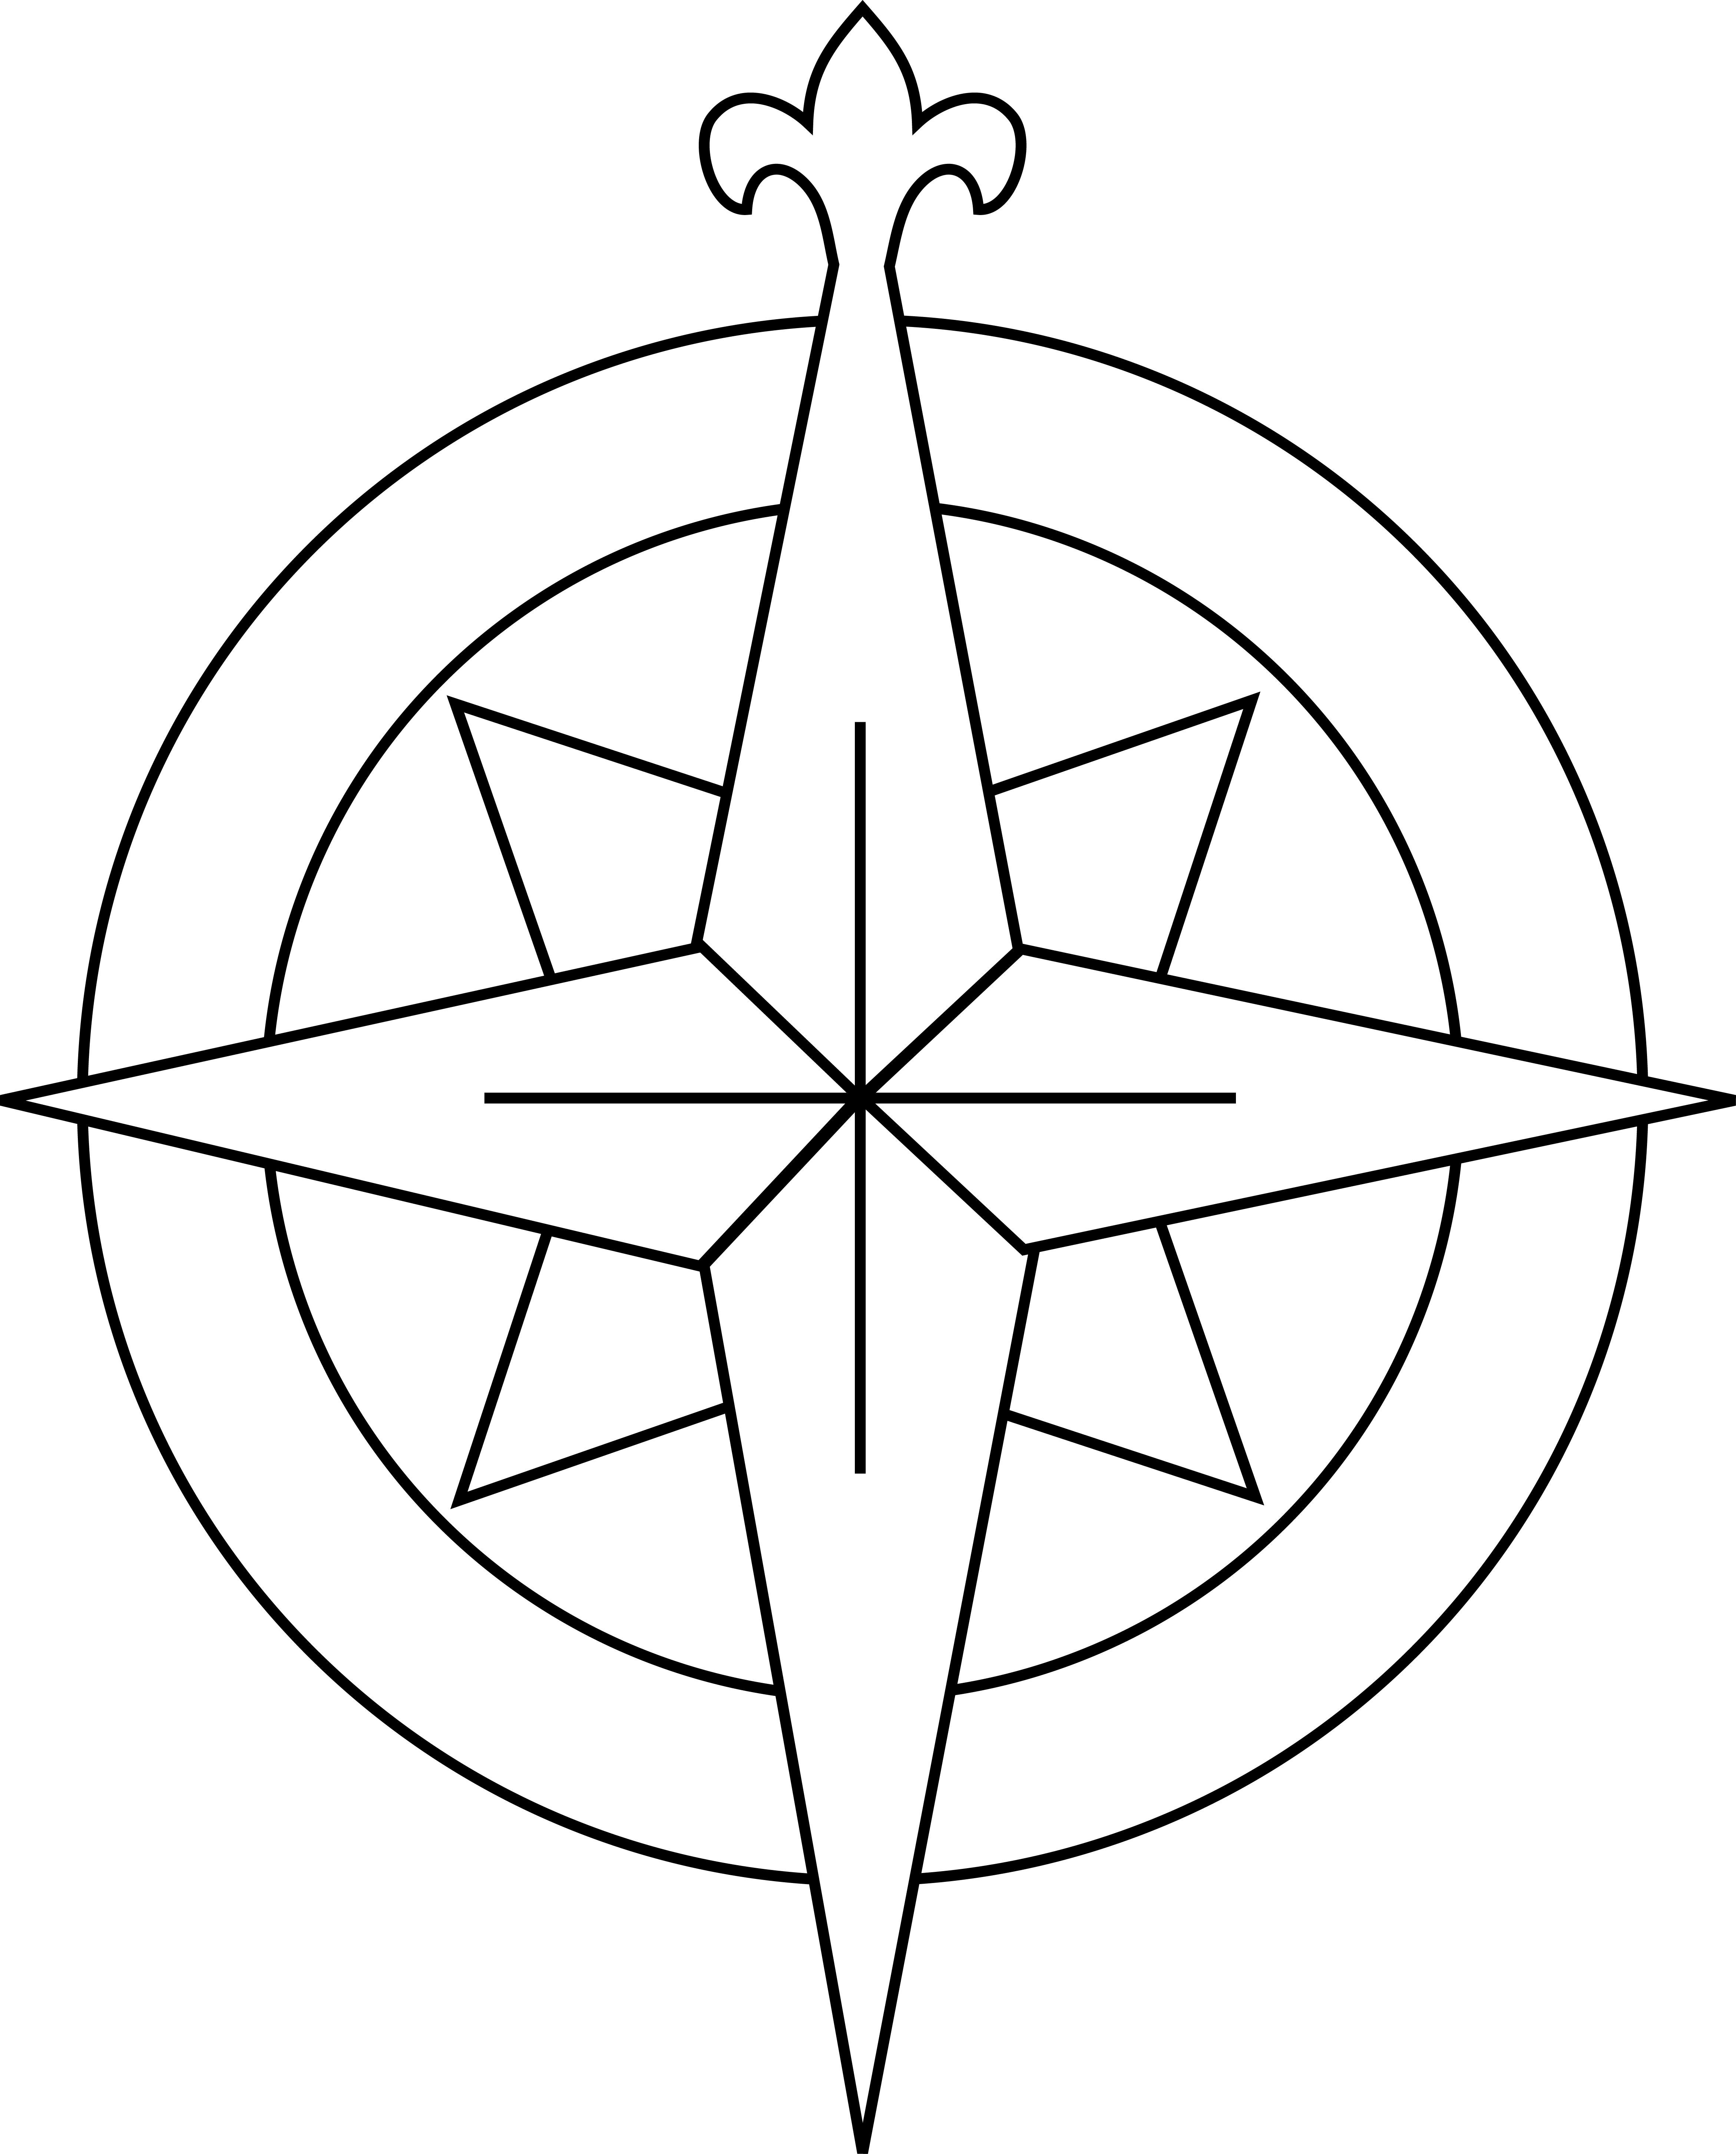 Putty Line Drawing Q : Line drawing compass clipart best